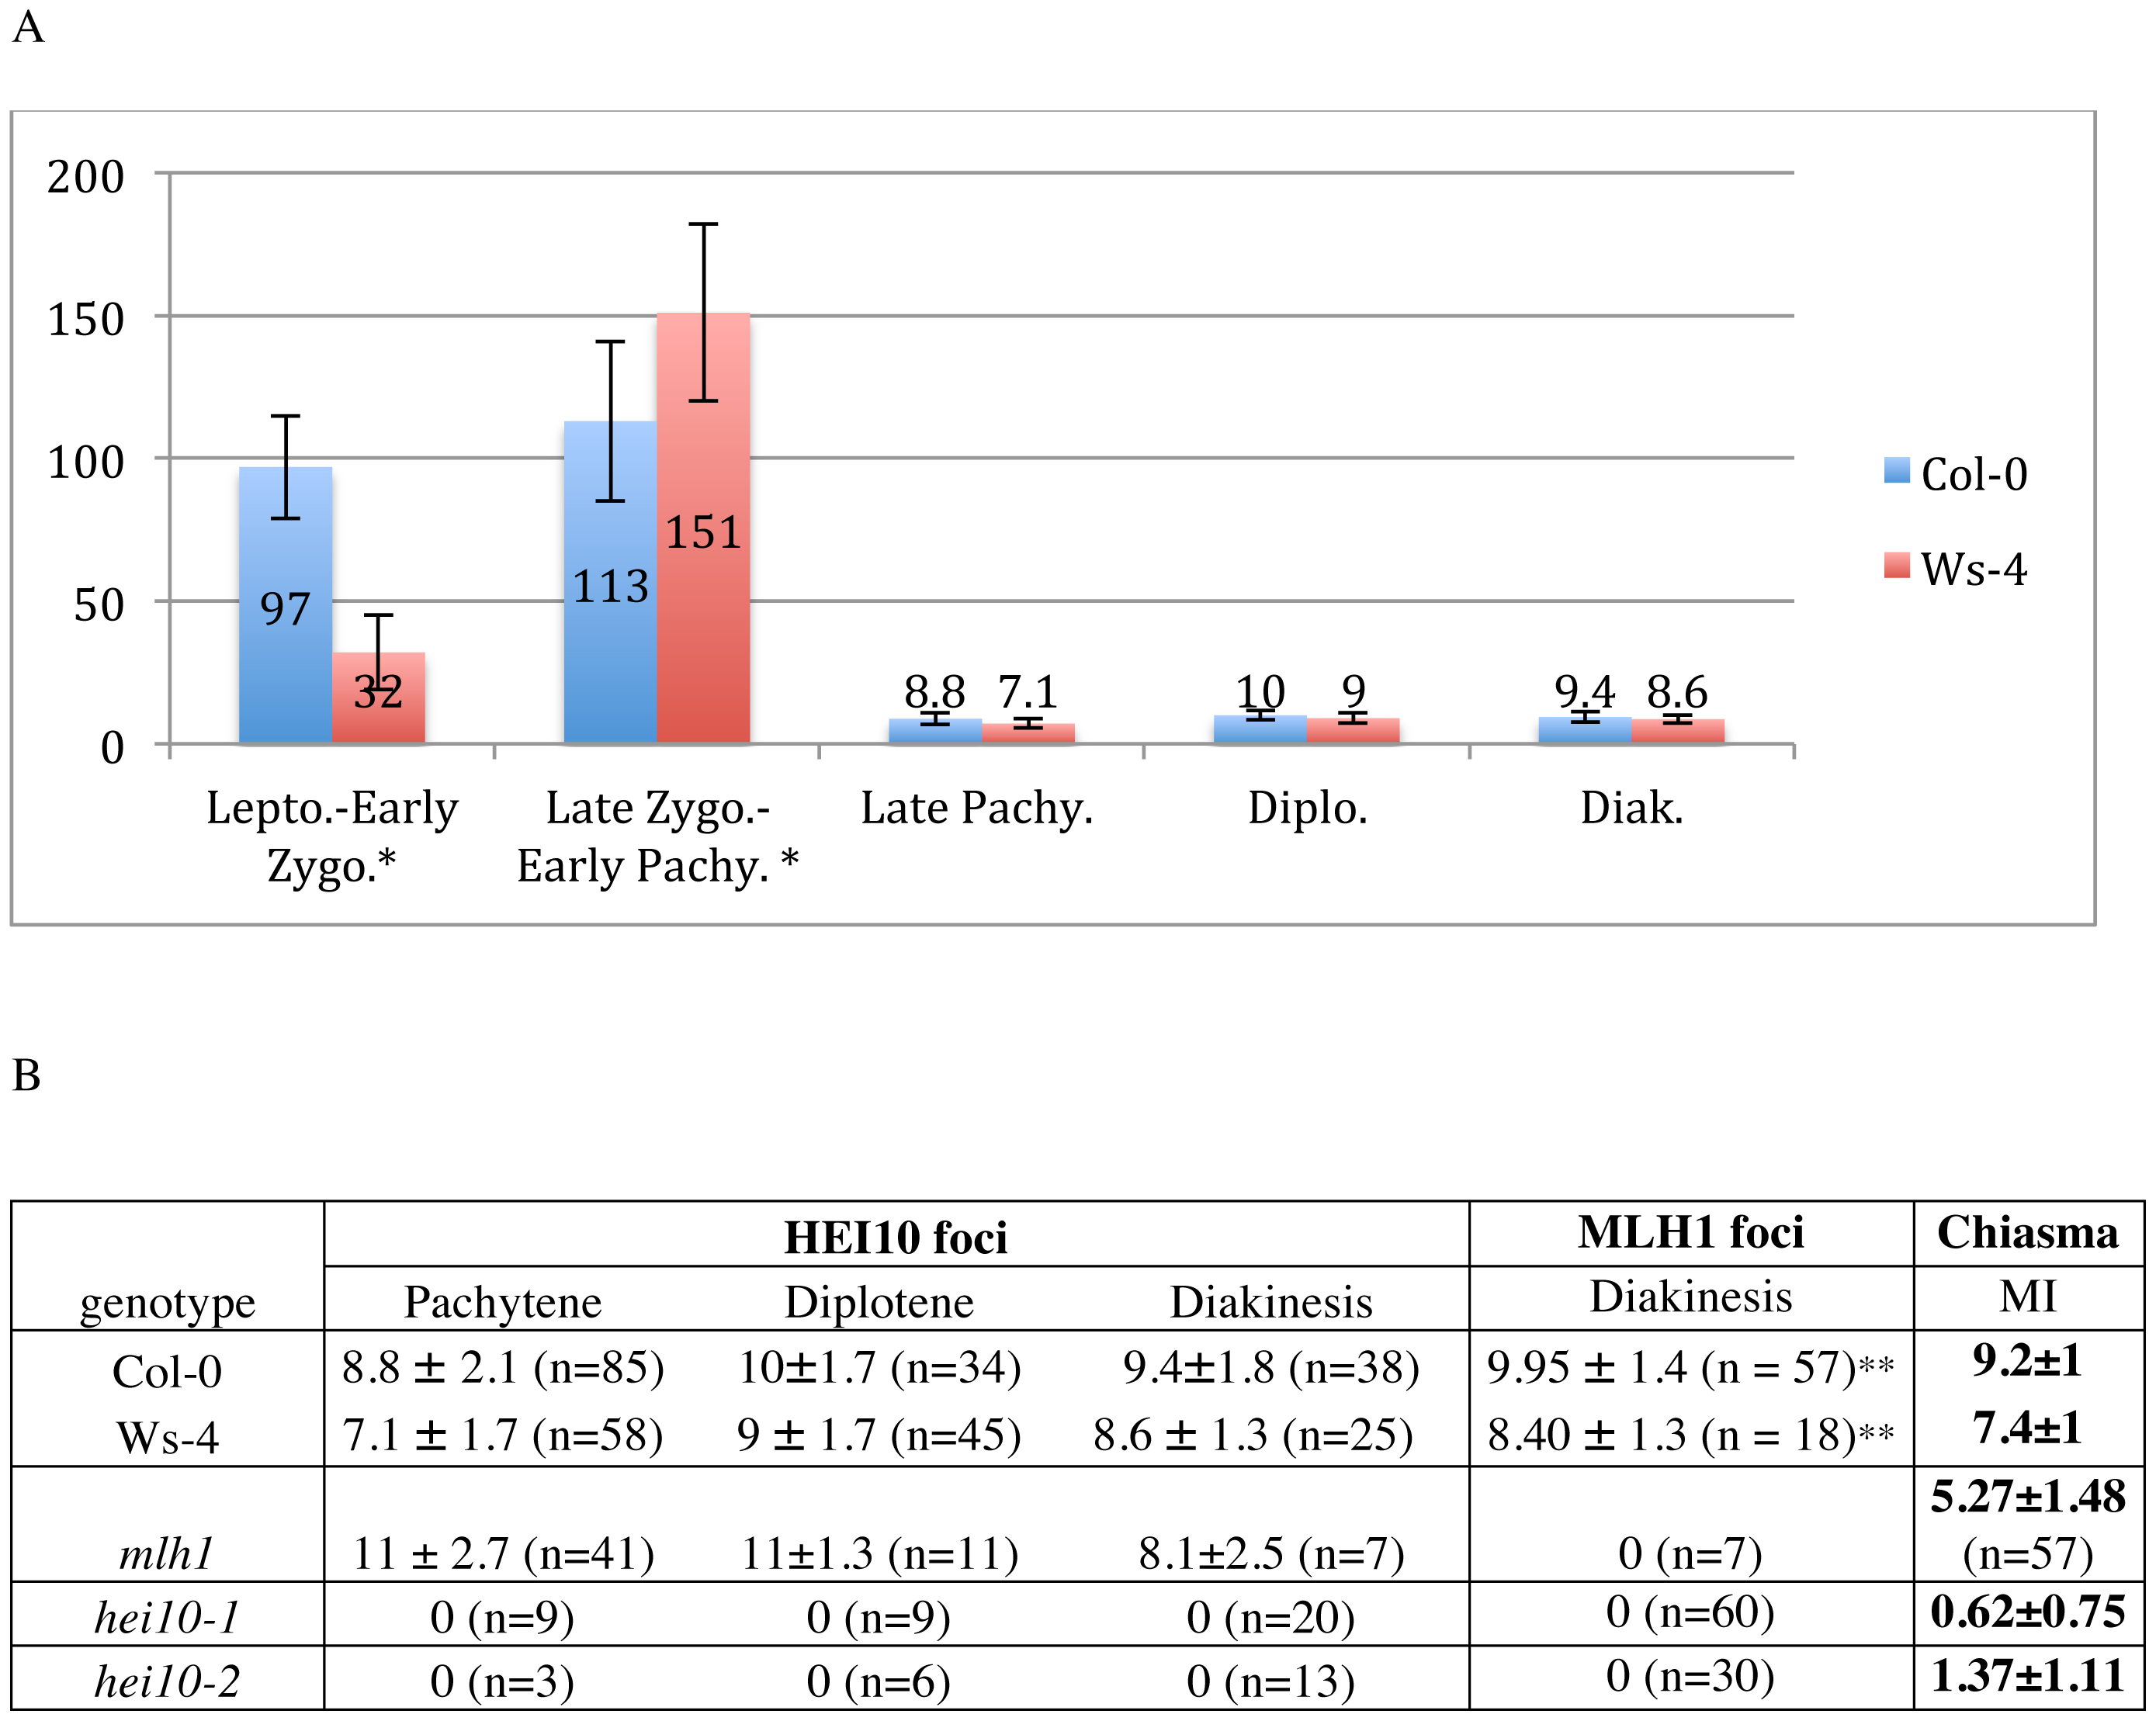 Quantification of HEI10 foci during meiotic prophase.